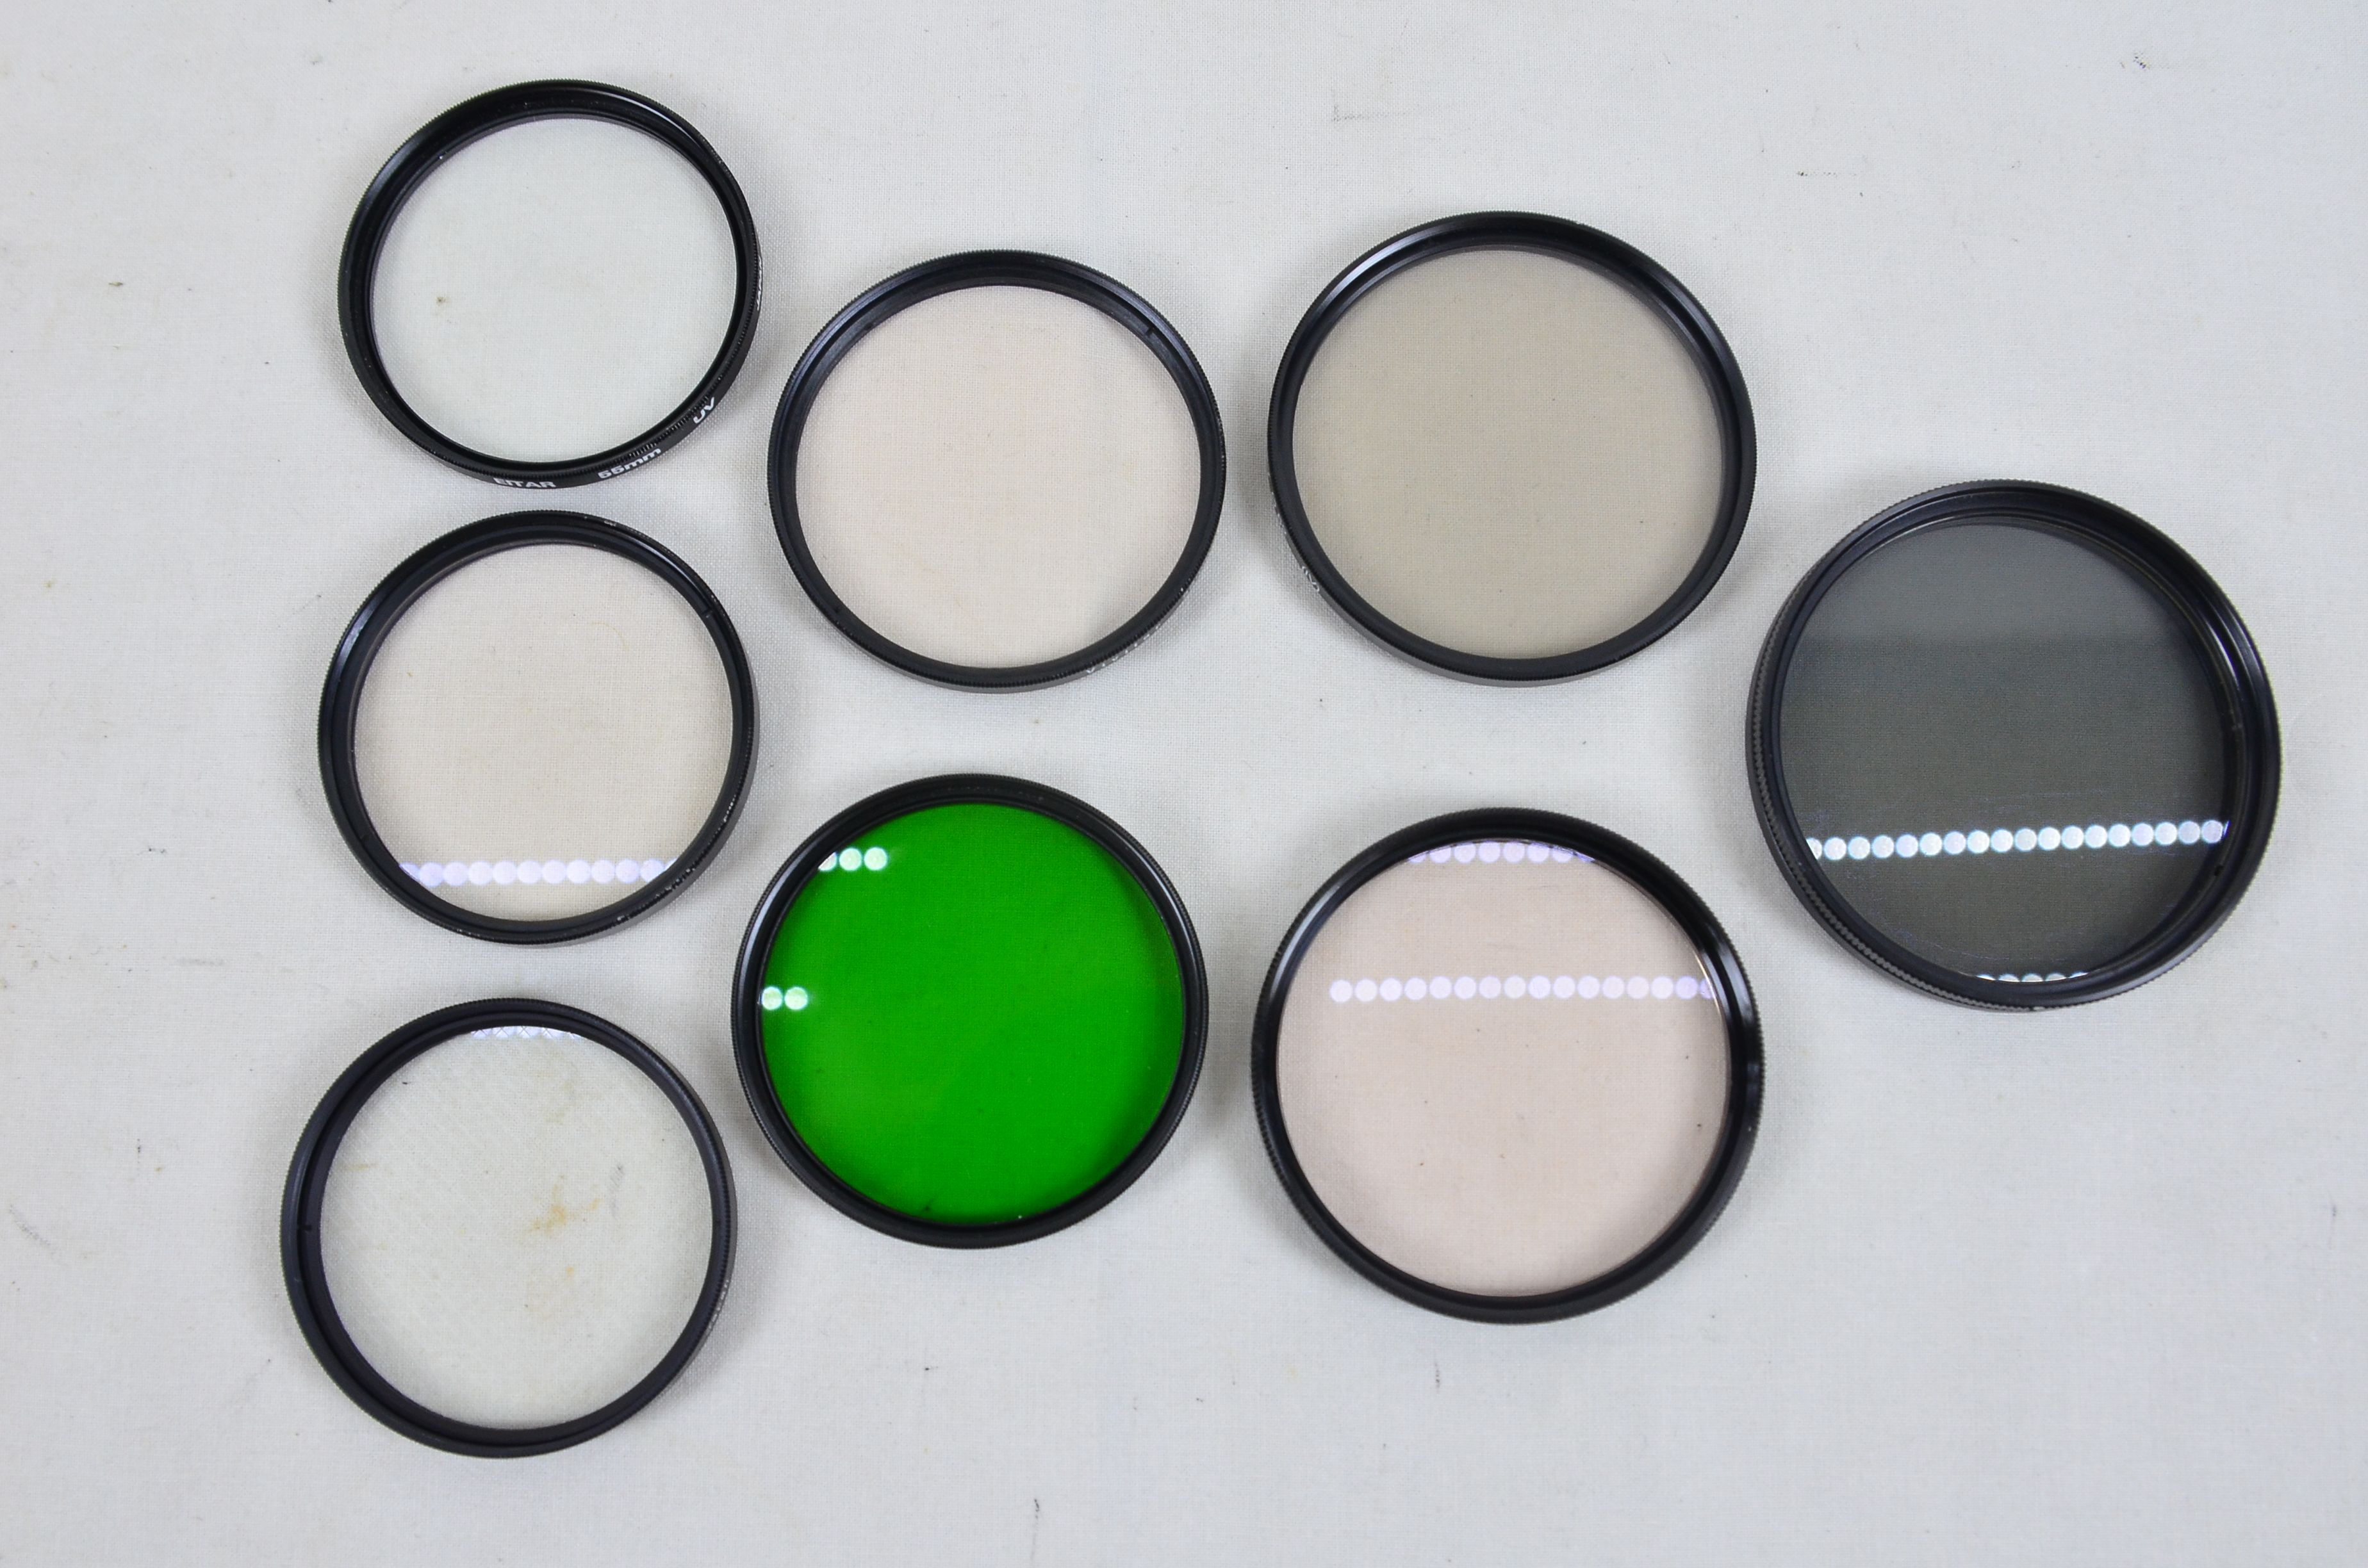 Assorted Filters 3x 55mm 2x 58mm 2x 62mm 1x 67mm Special Effects Filters Thumbnail 1